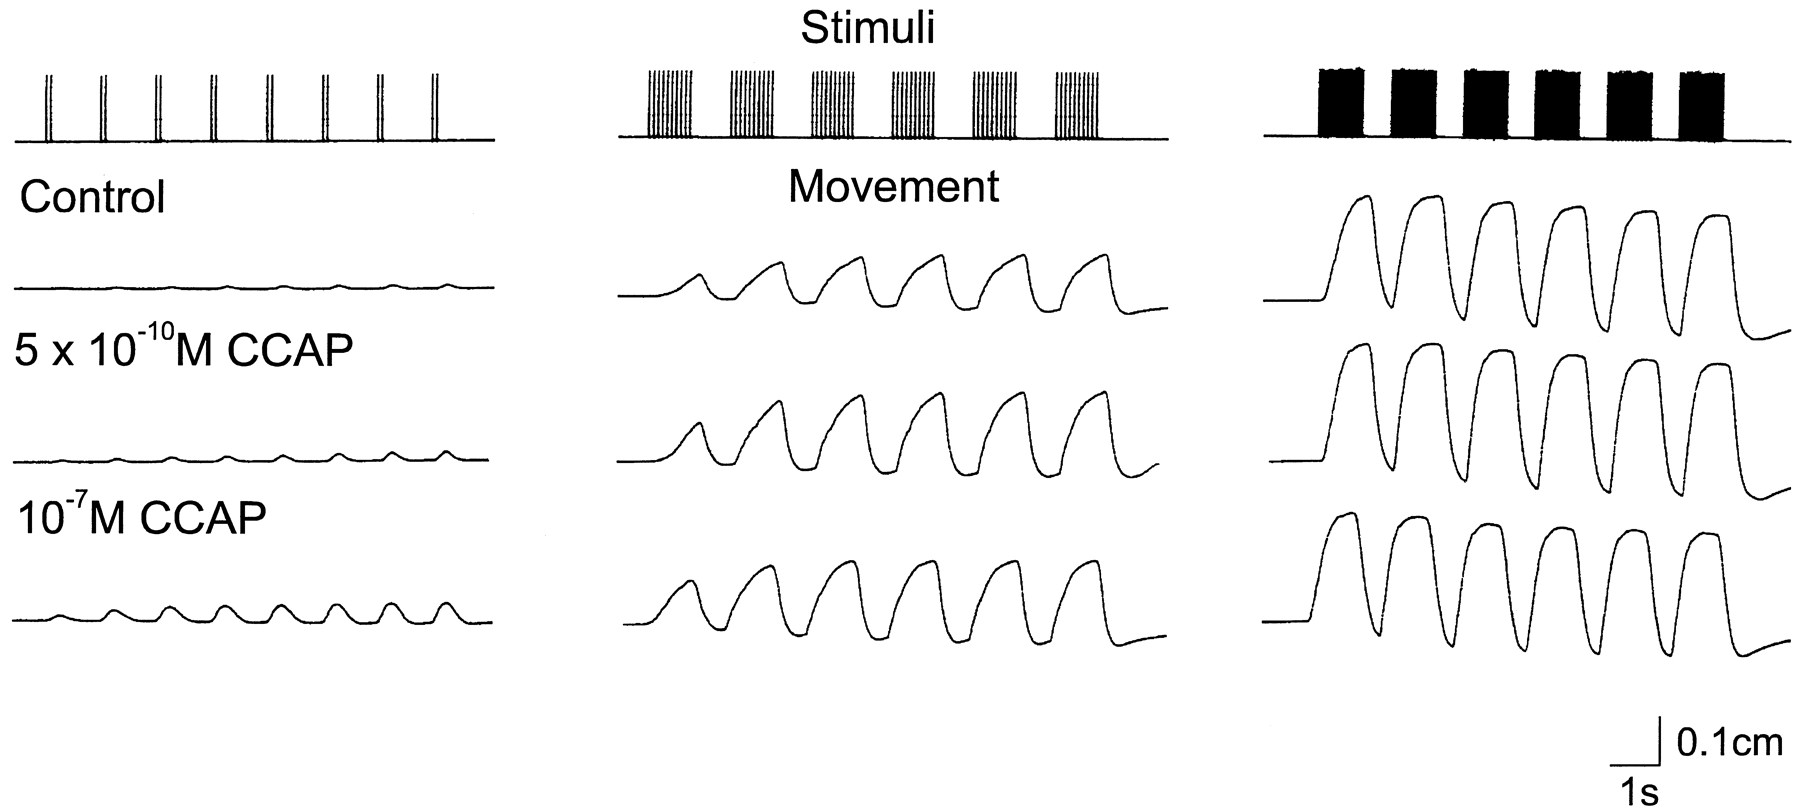 Modulation of Oscillator Interactions in the Crab Stomatogastric